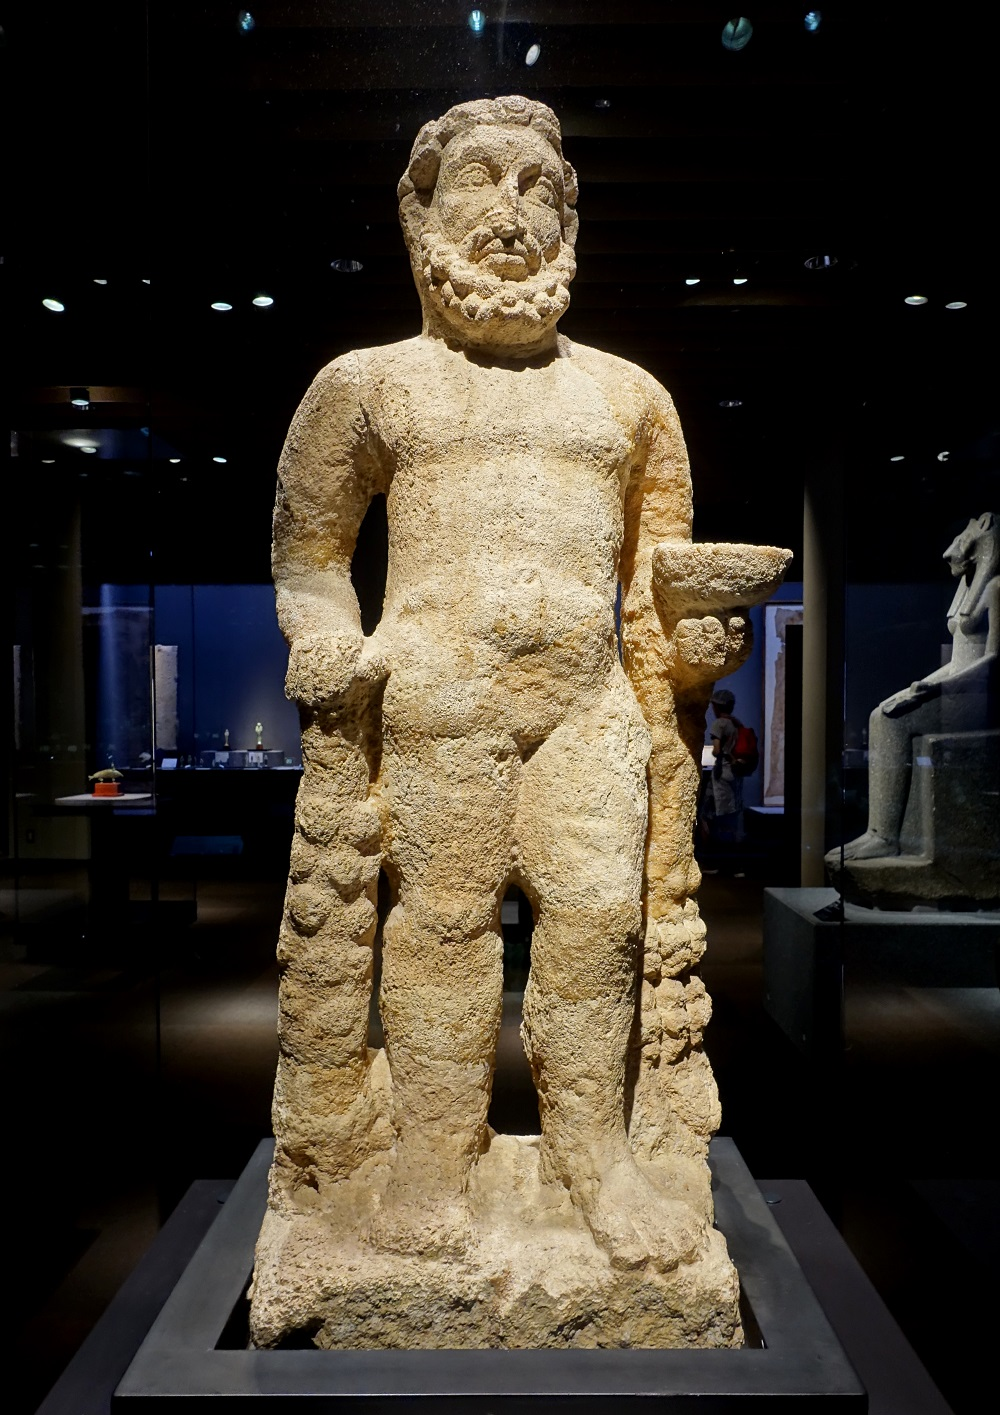 Limestone statue of Heracles | C1st-2nd CE, excavated at Hatra (Iraq), on display in Tokyo National Museum |  Image Source